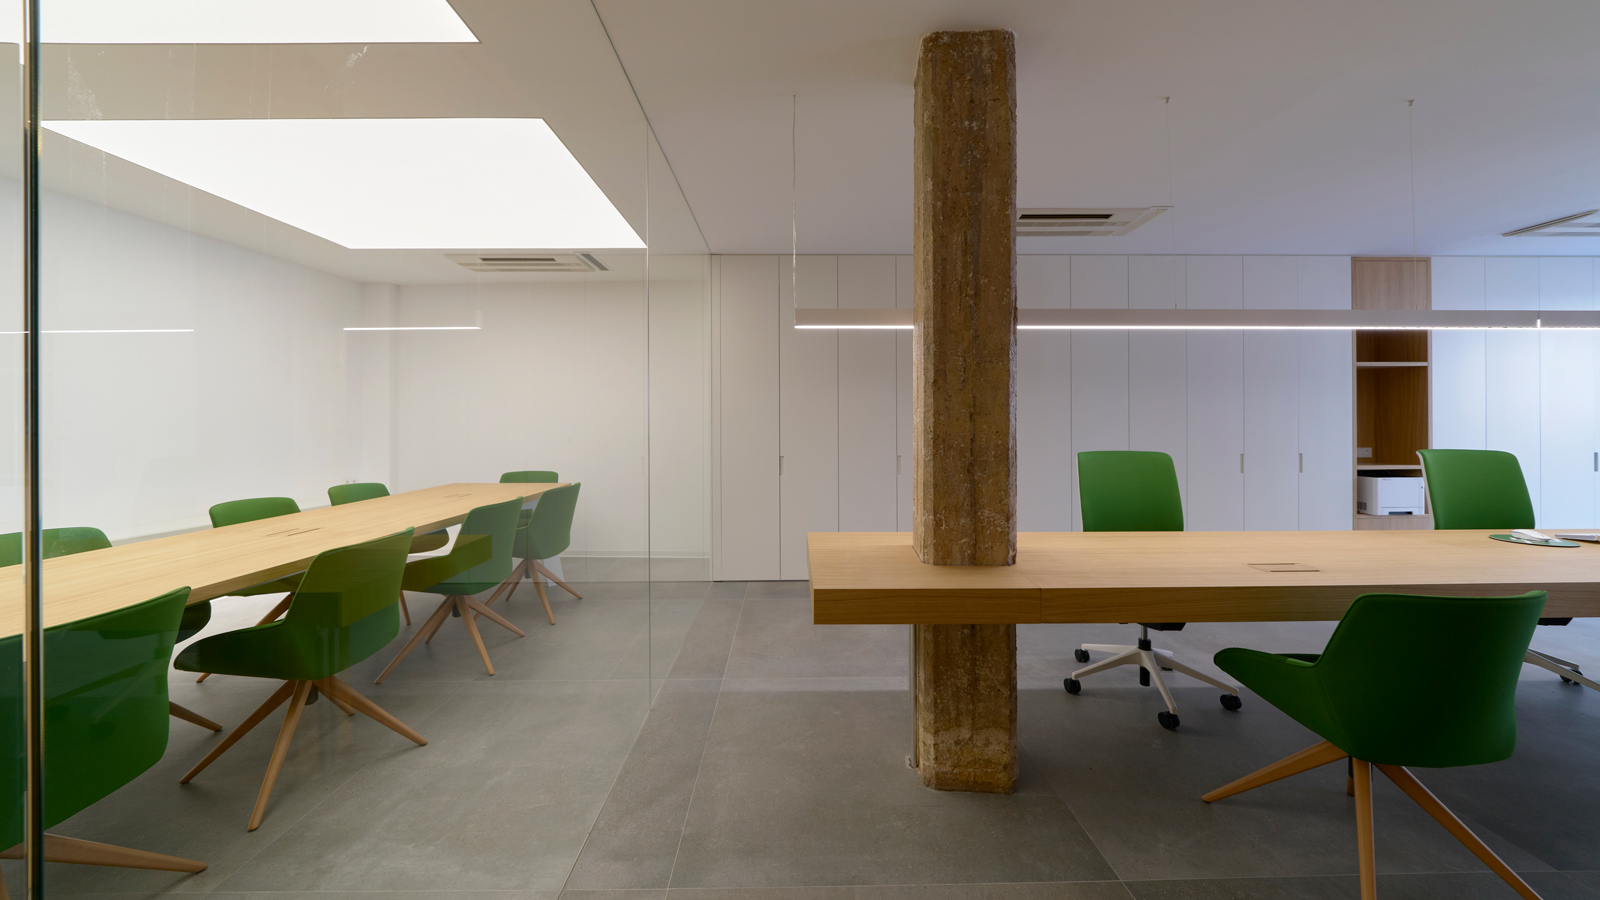 PORCELANOSA Group Projects: EM offices in Meliana: ergonomics and design for workplace wellbeing